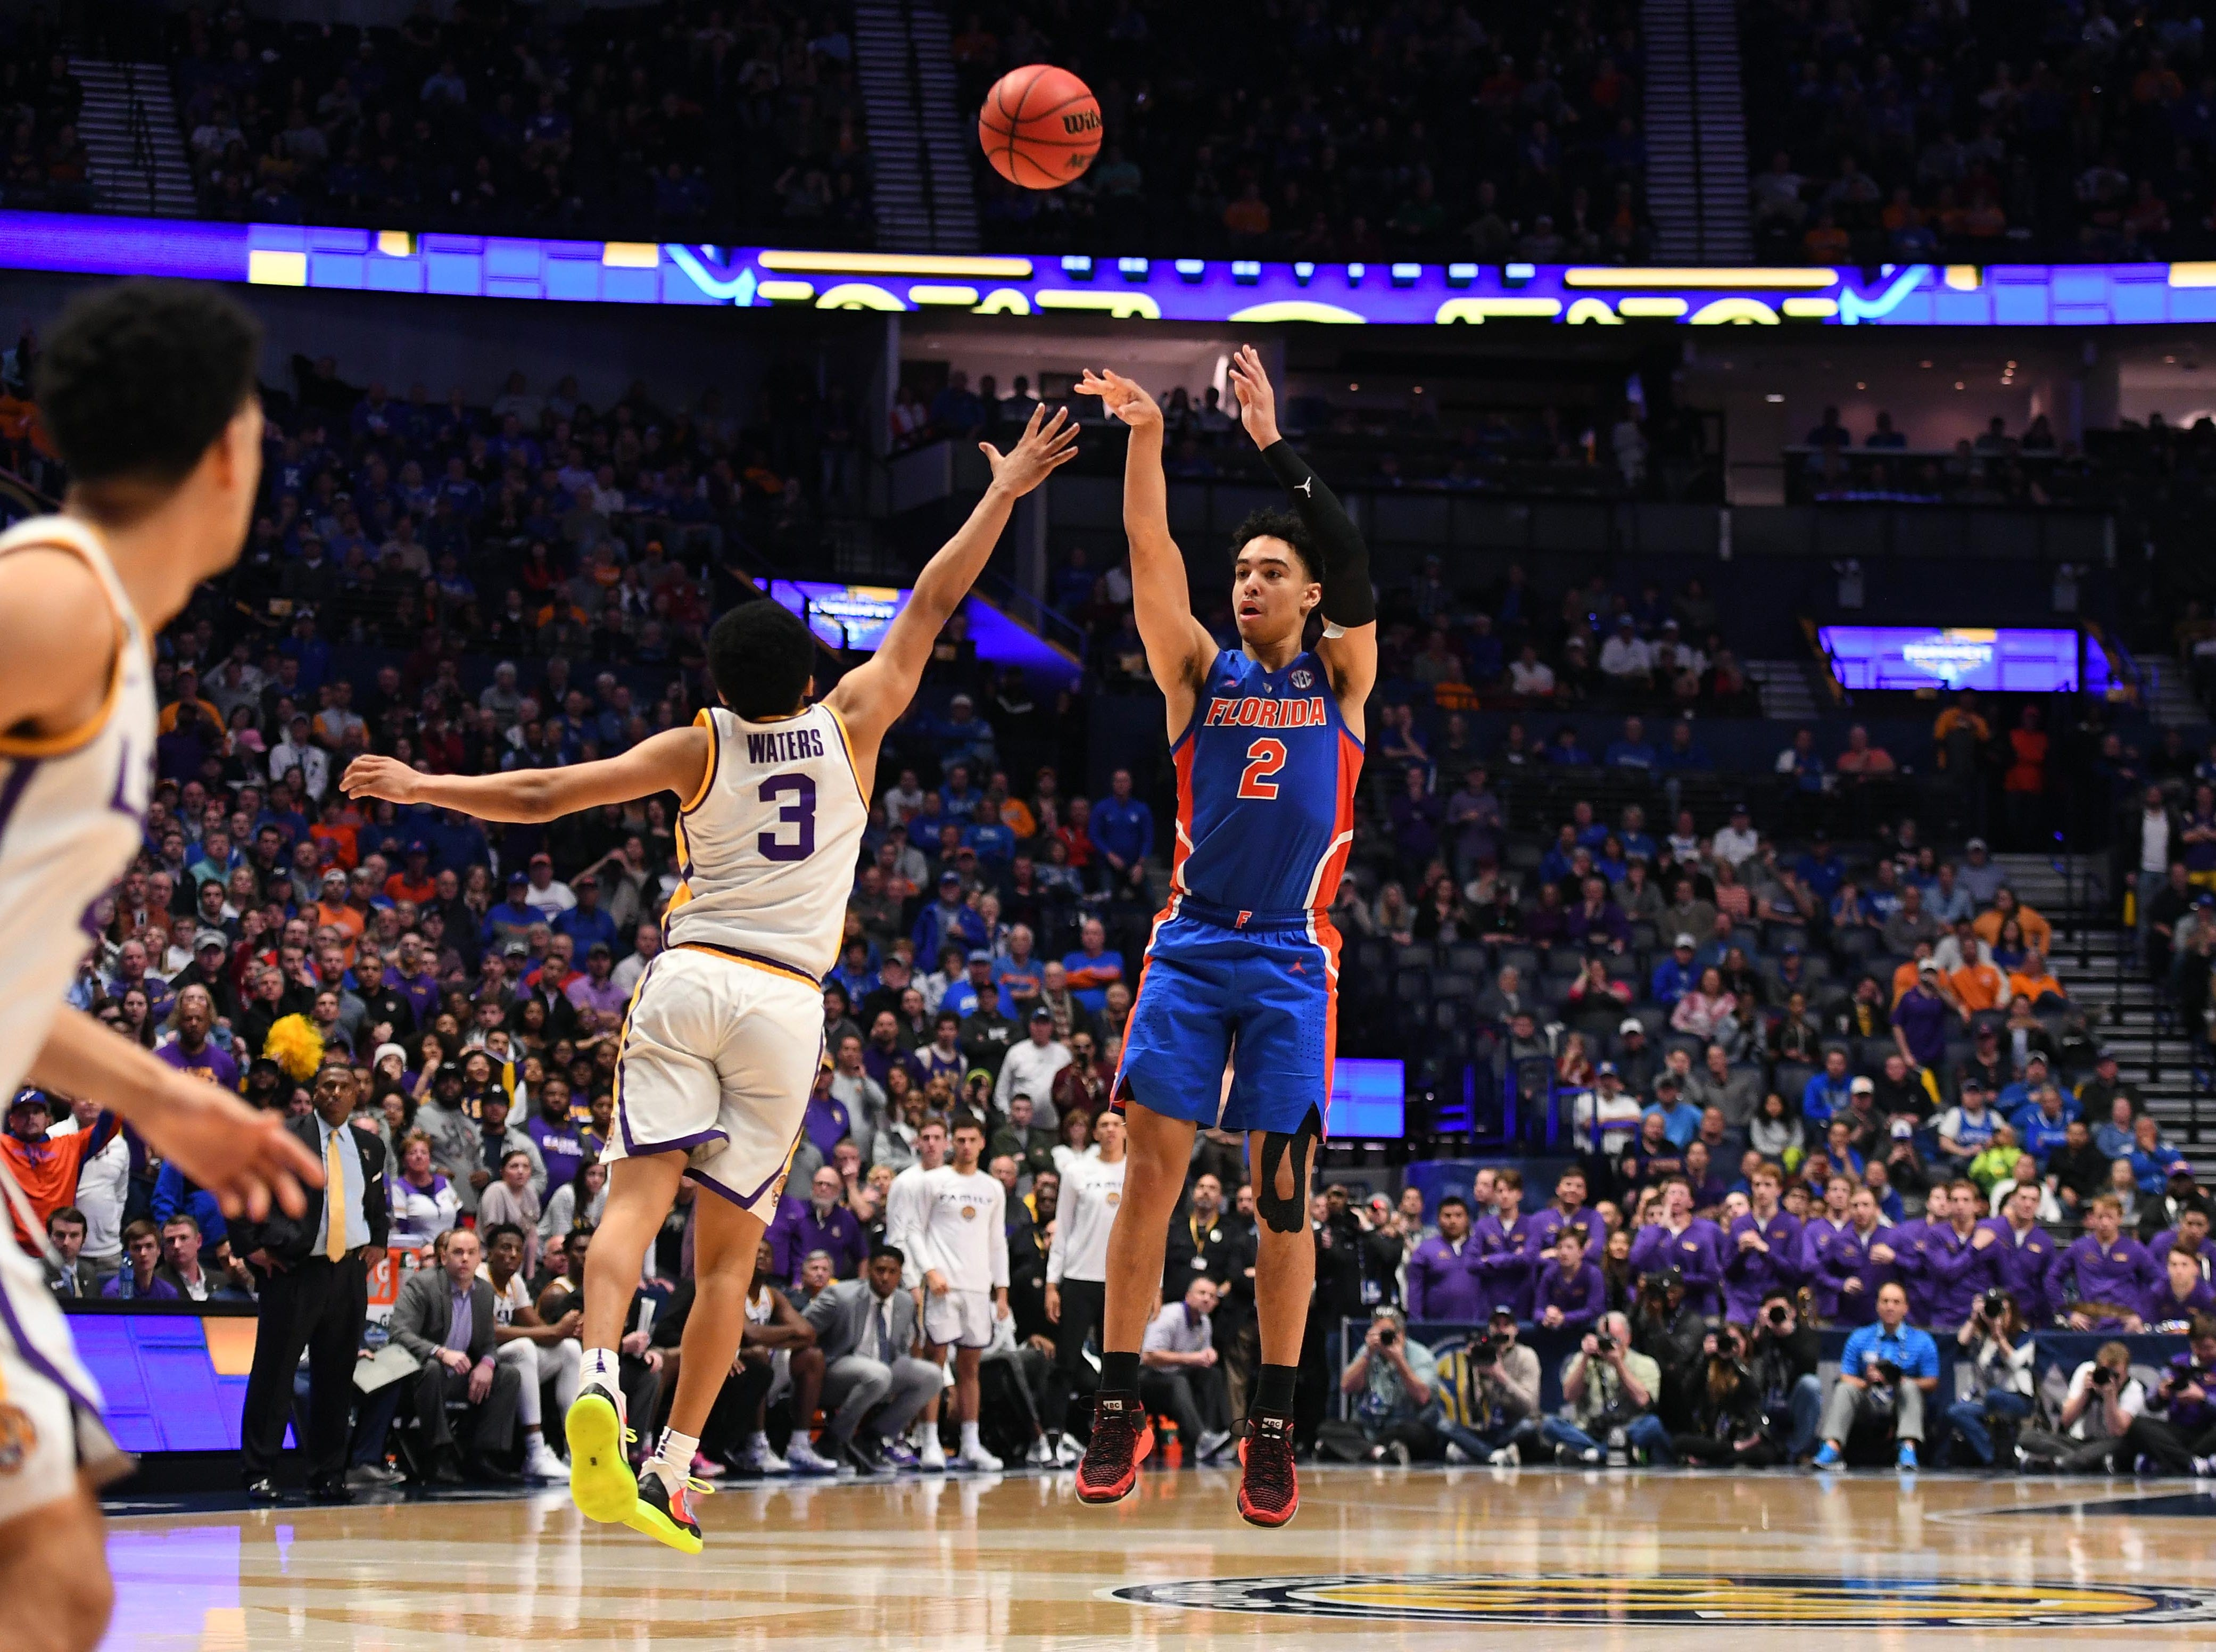 Mar 15, 2019; Nashville, TN, USA; Florida Gators guard Andrew Nembhard (2) shots the game-winning shot over LSU Tigers guard Tremont Waters (3) to advance in the SEC conference tournament at Bridgestone Arena. Mandatory Credit: Christopher Hanewinckel-USA TODAY Sports